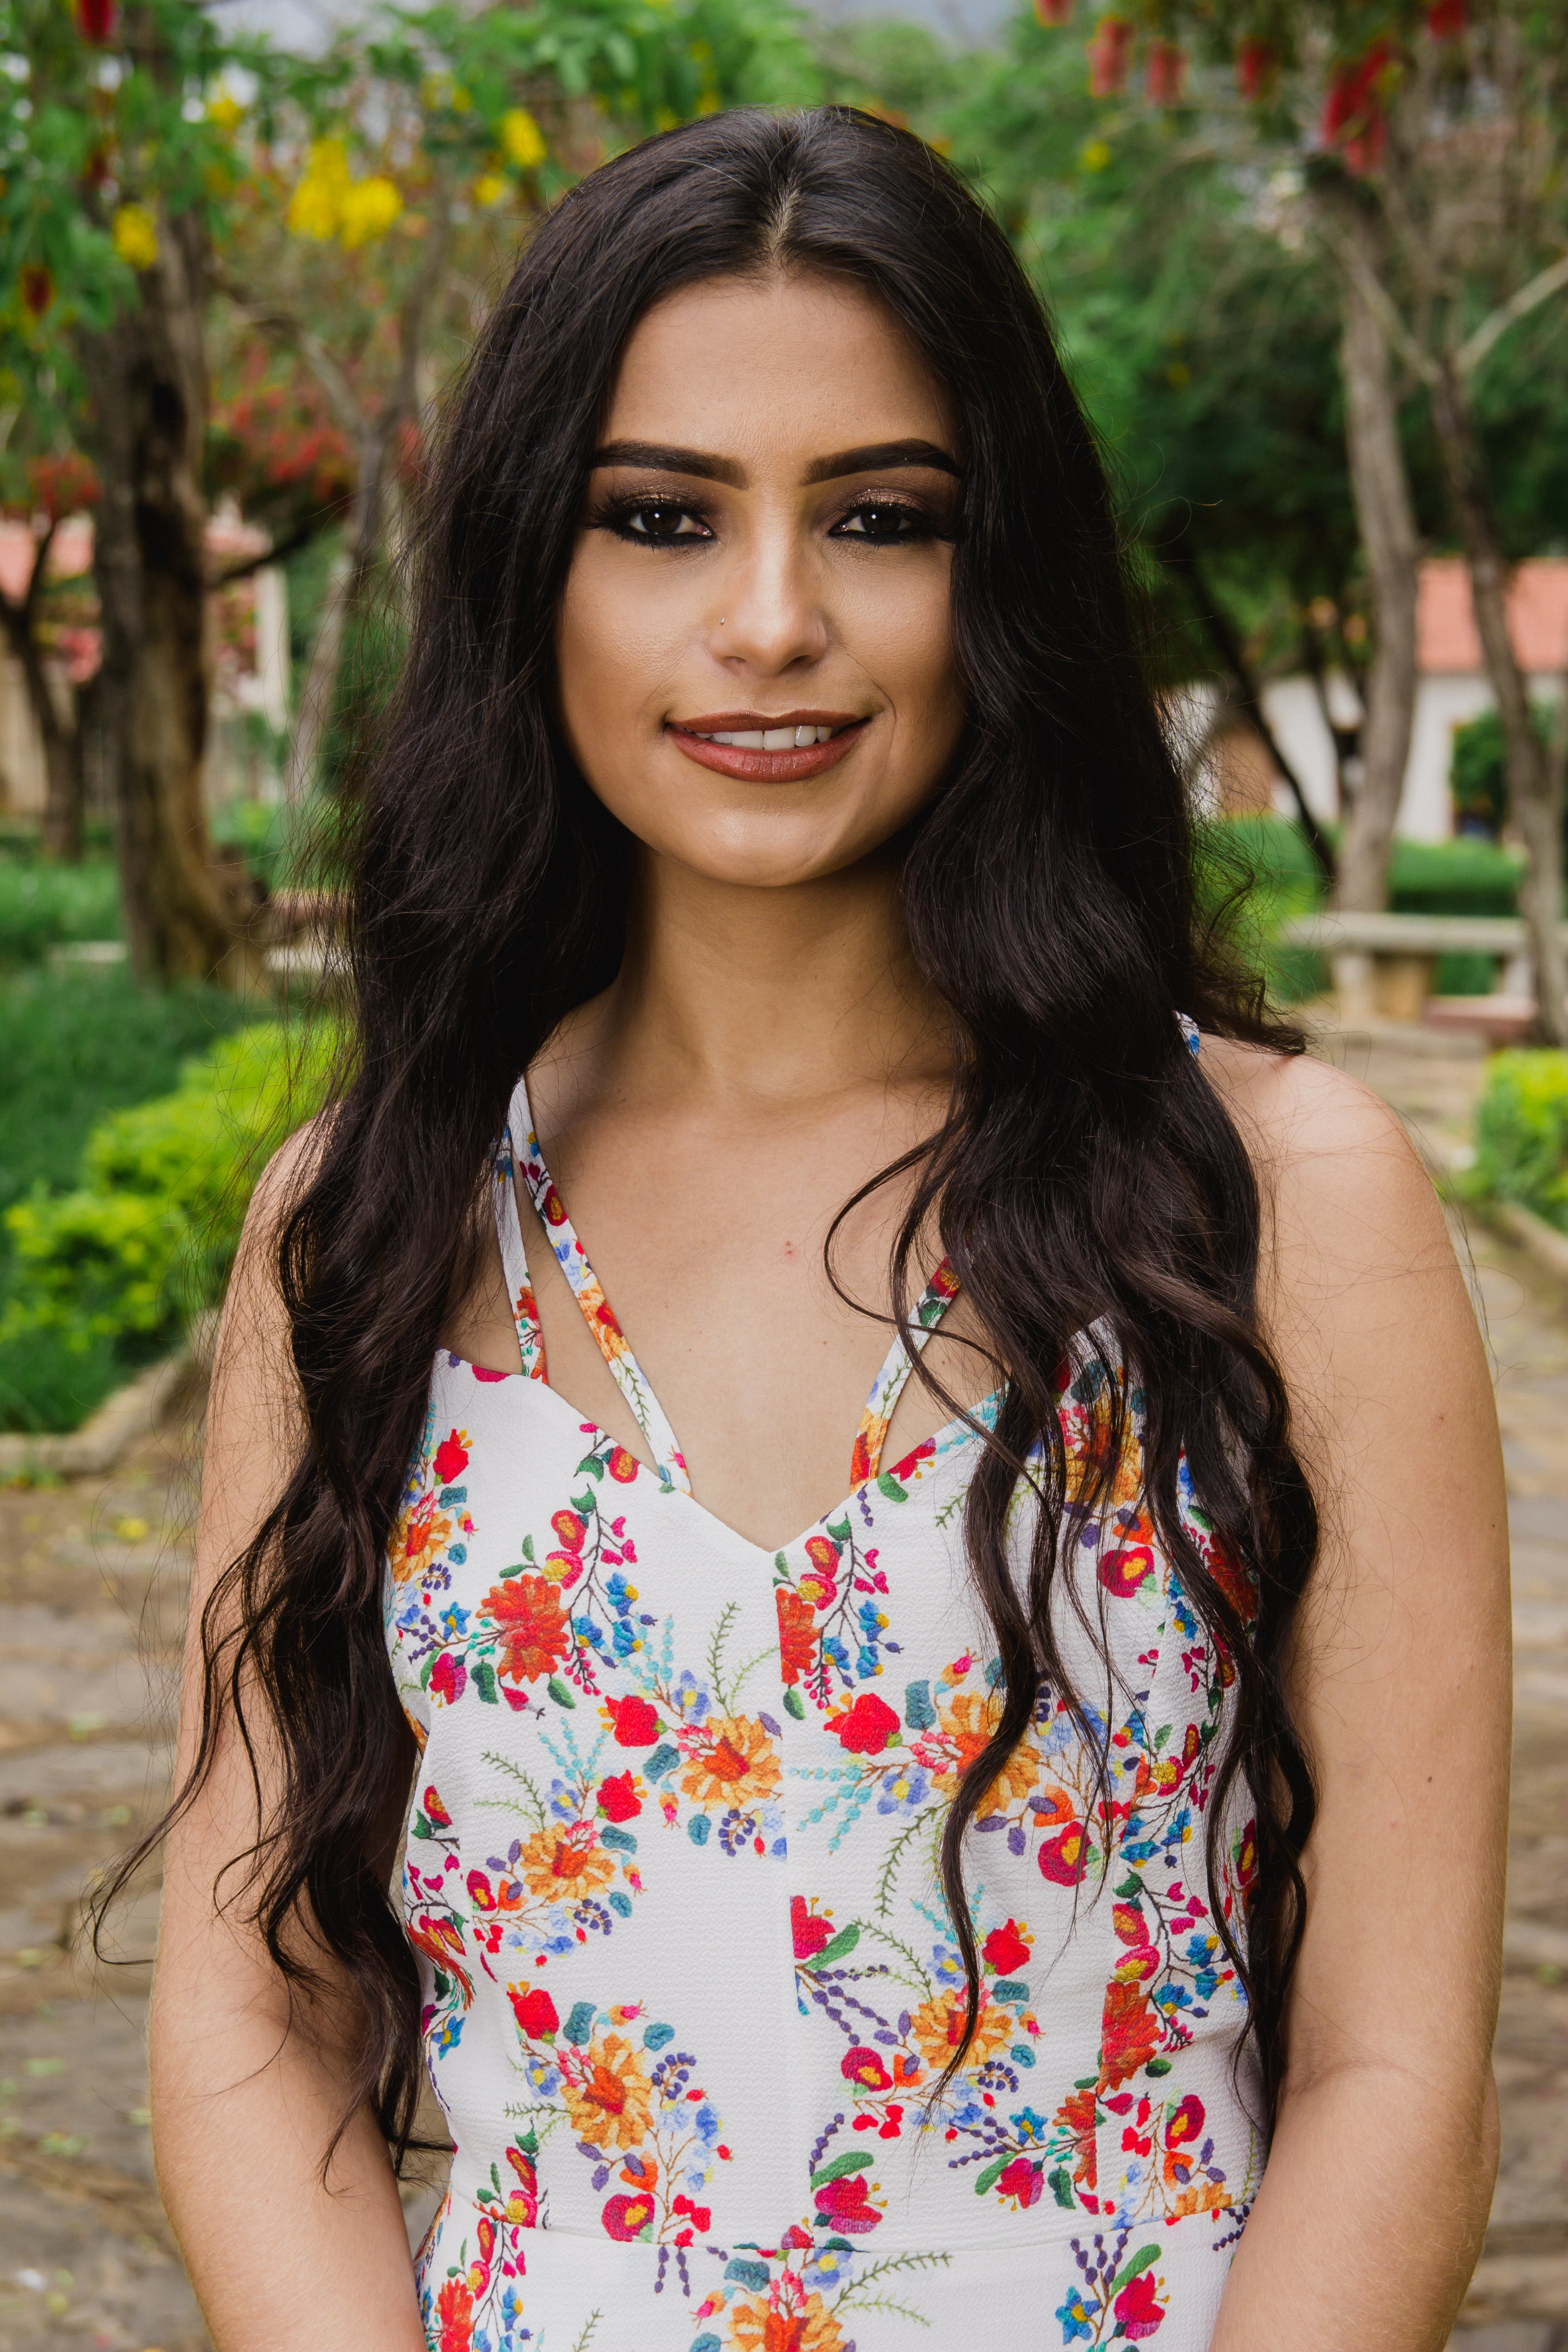 Woman Wearing White and Multicolored Floral Sleeveless Top